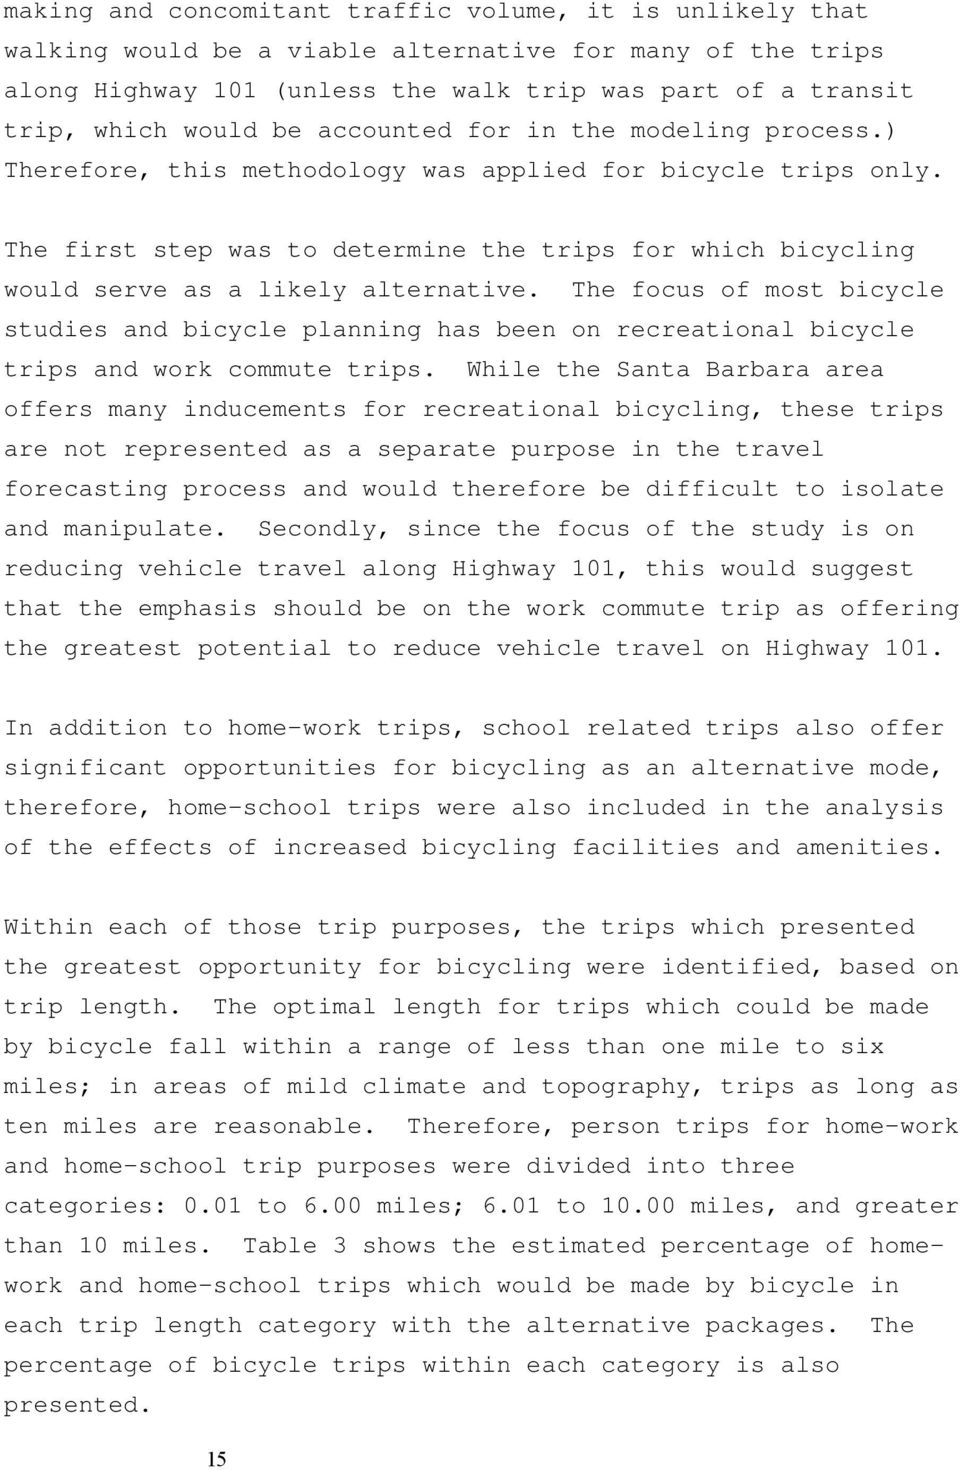 The first step was to determine the trips for which bicycling would serve as a likely alternative.